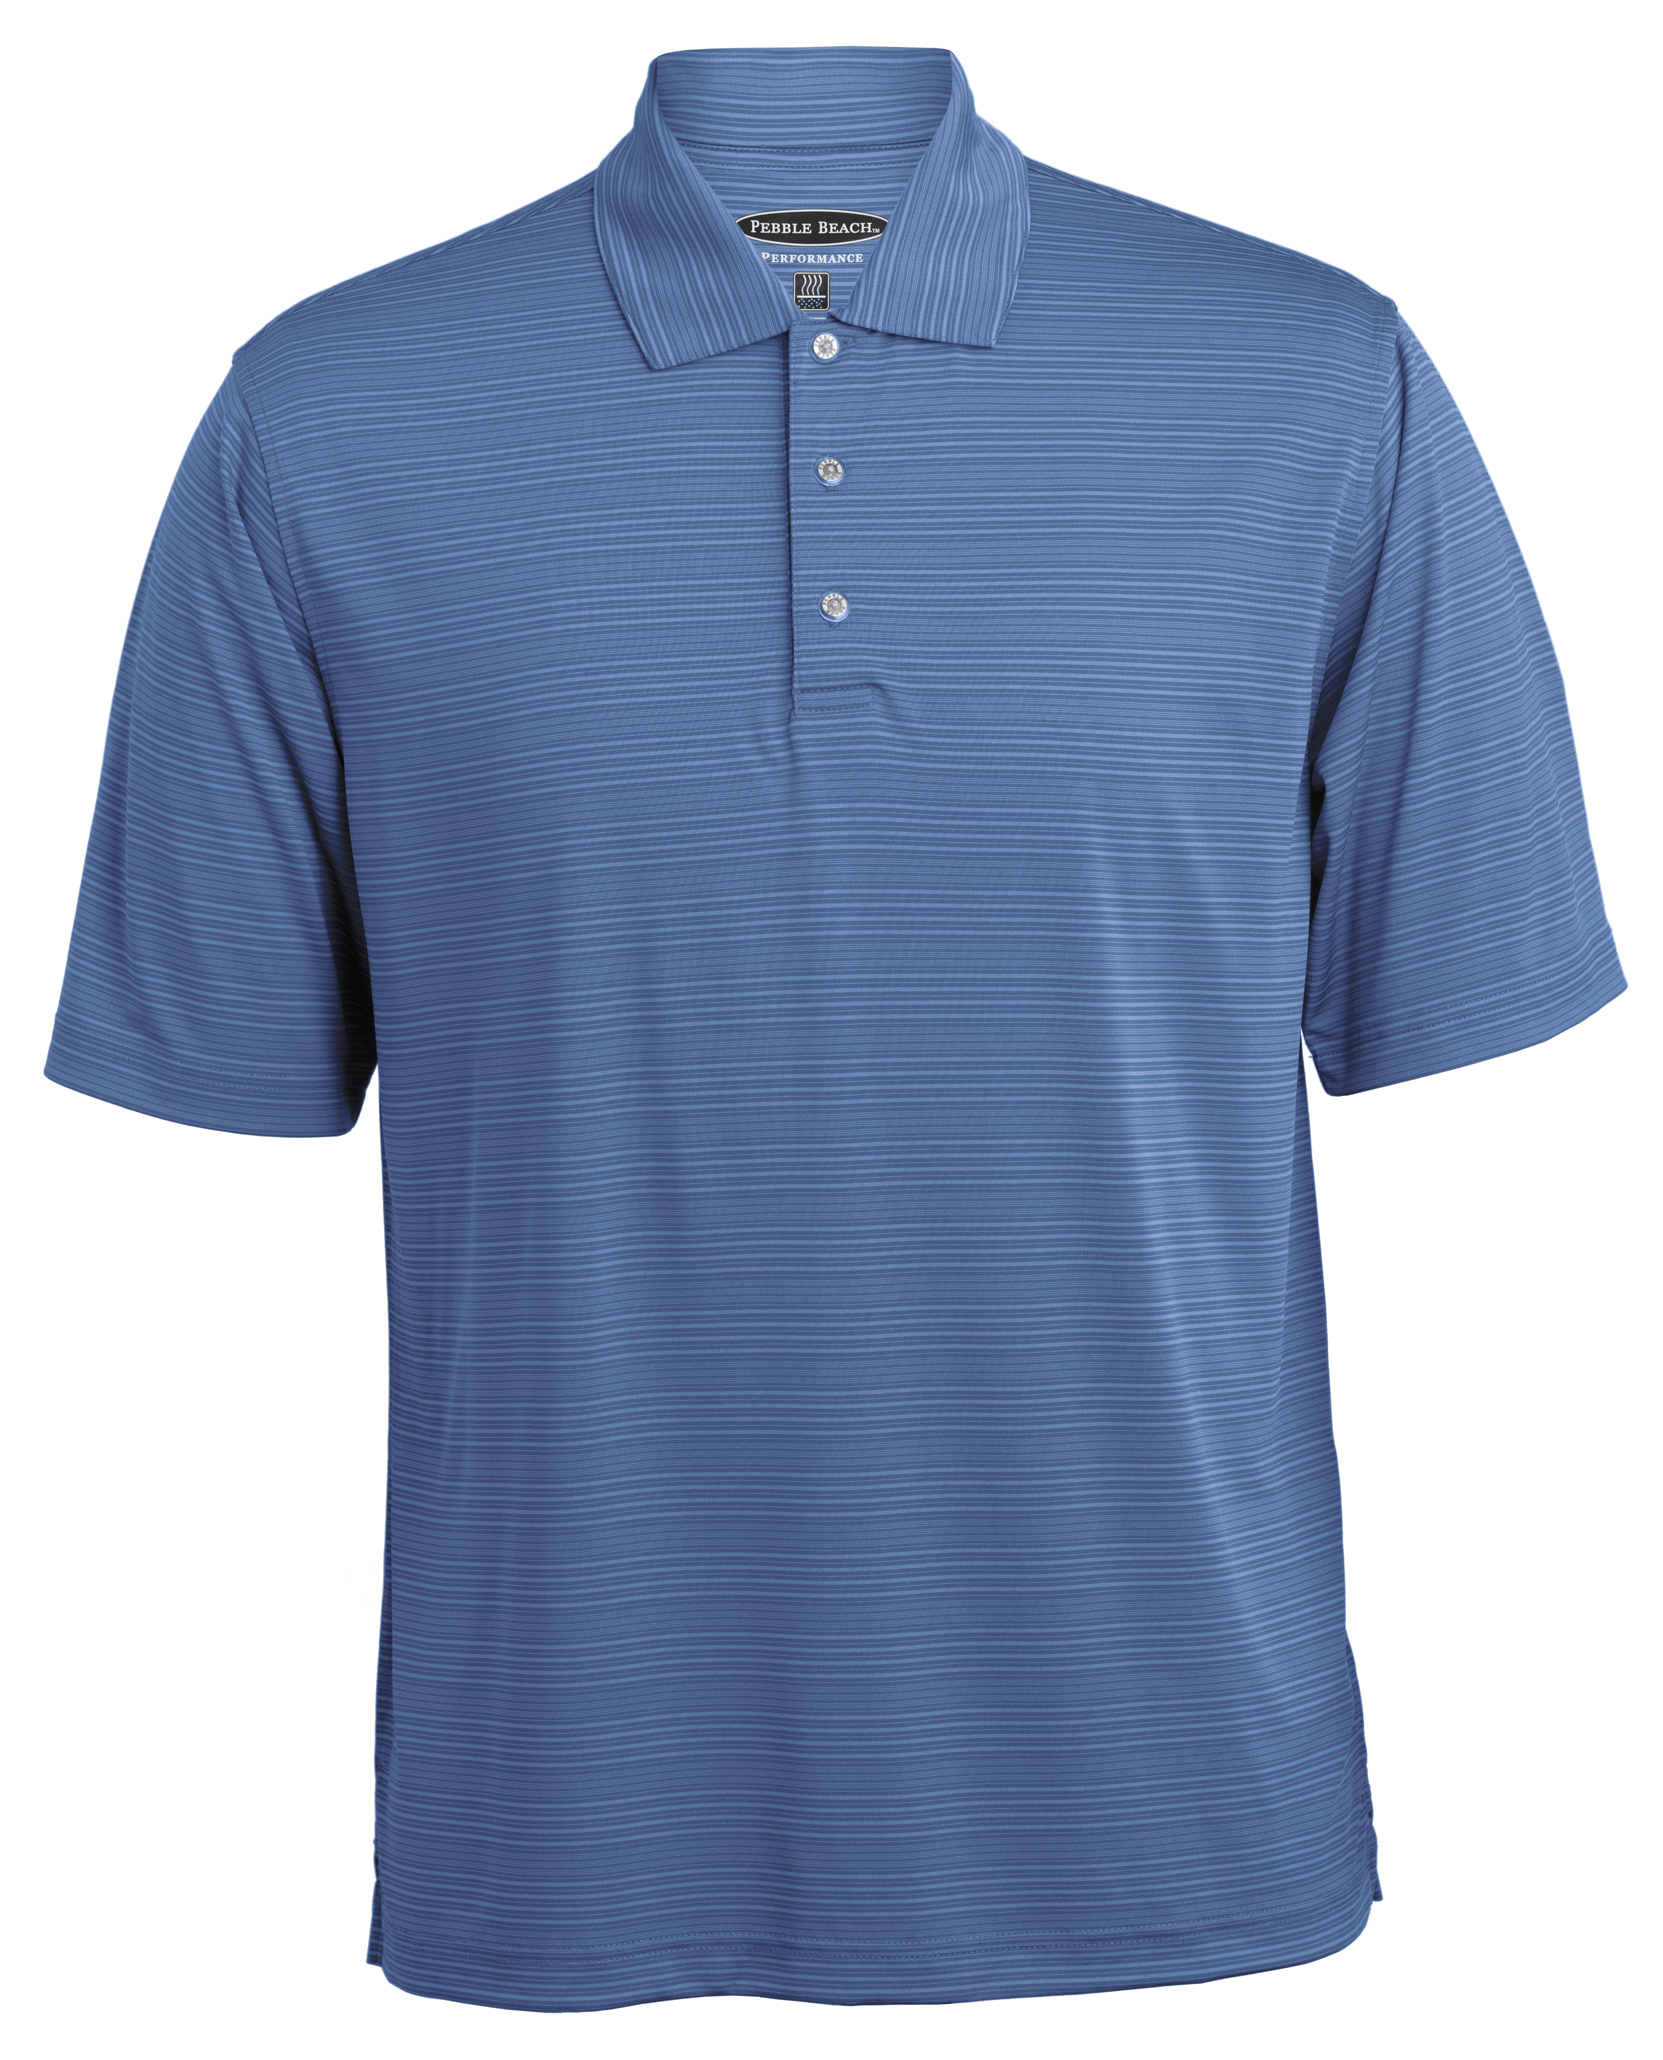 1b2b14146 Style 7449 - Tonal Stripe Polo Pebble Beach Corporate Apparel